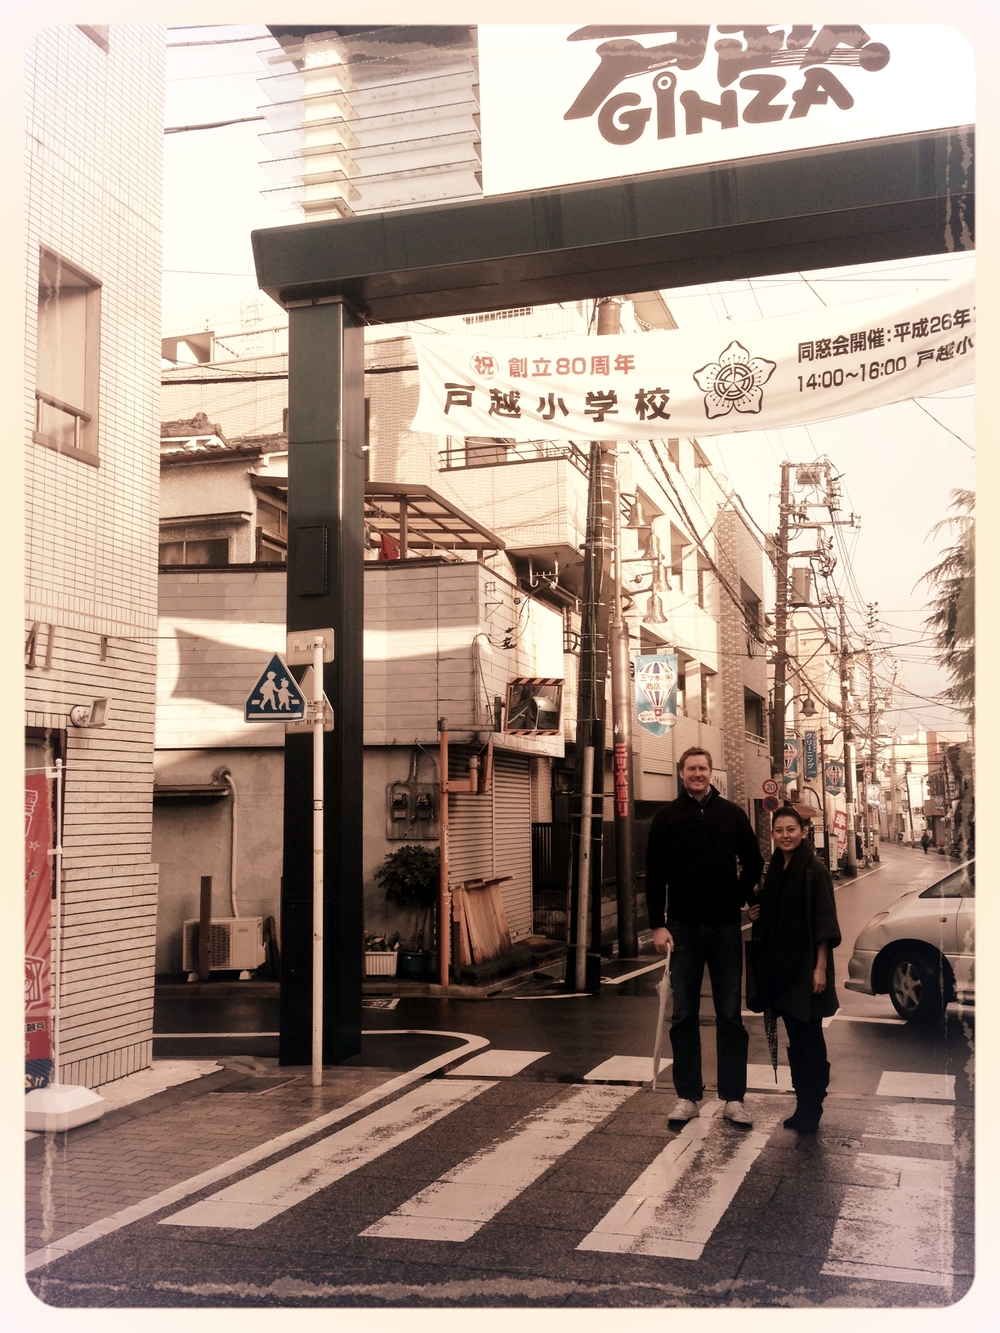 Ai & I Standing Under A Togoshi Ginza Gate Right Next To Our Shop Location